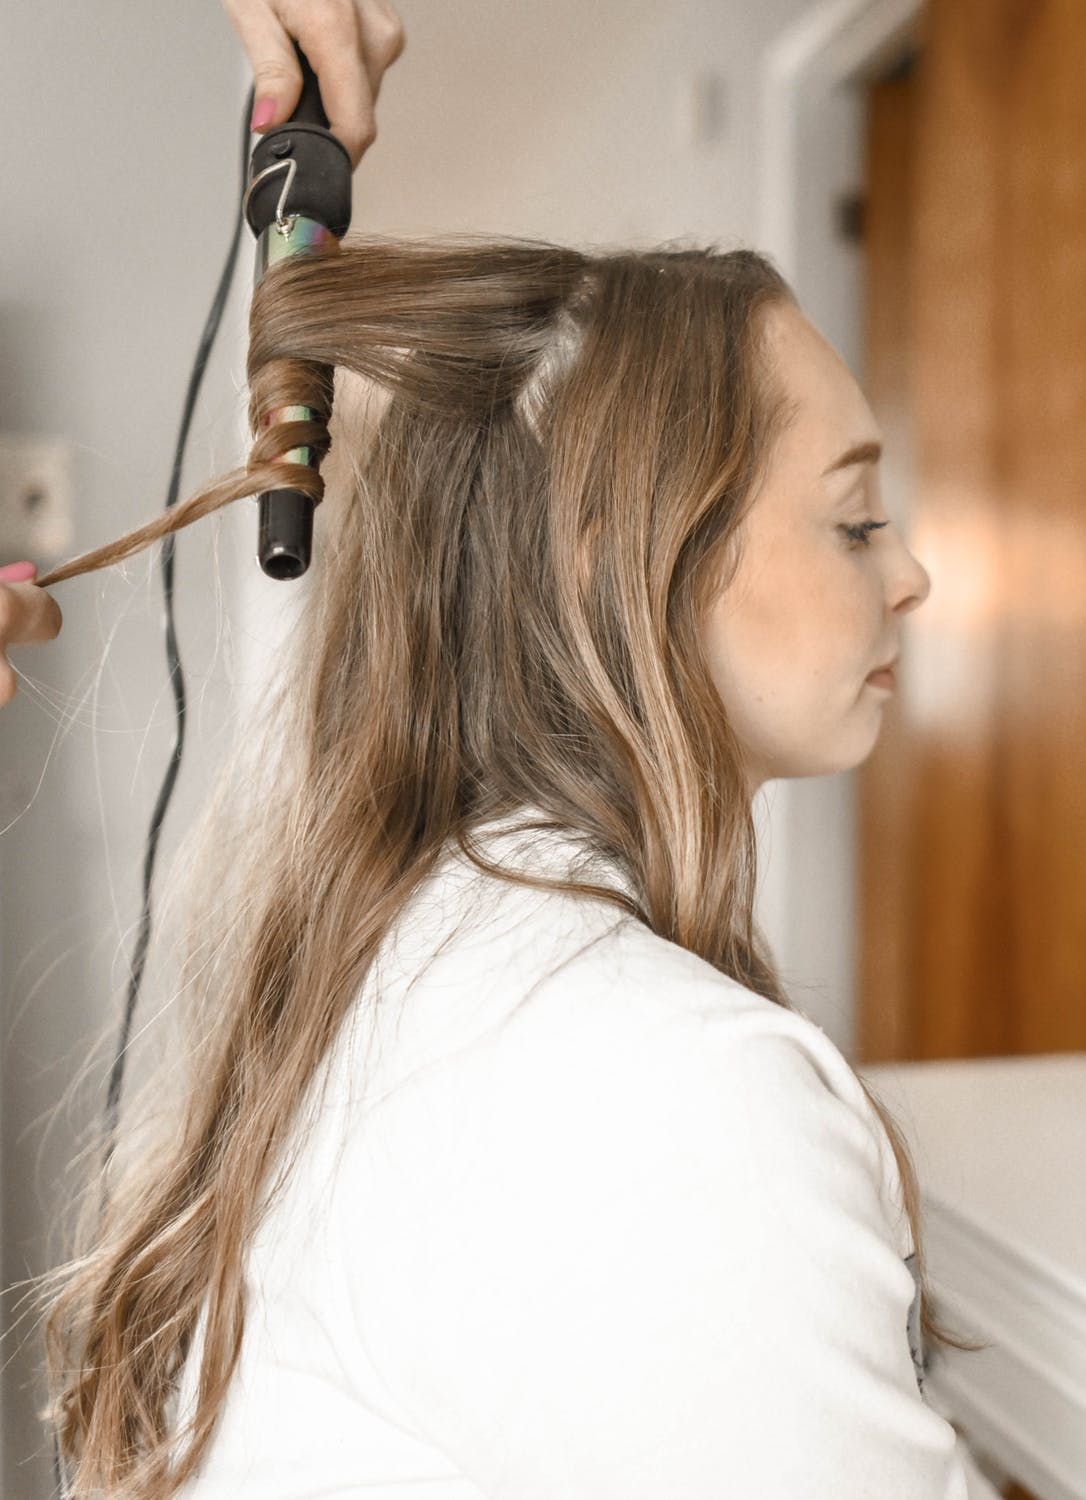 Hairstyle Trends to Look for in 2019